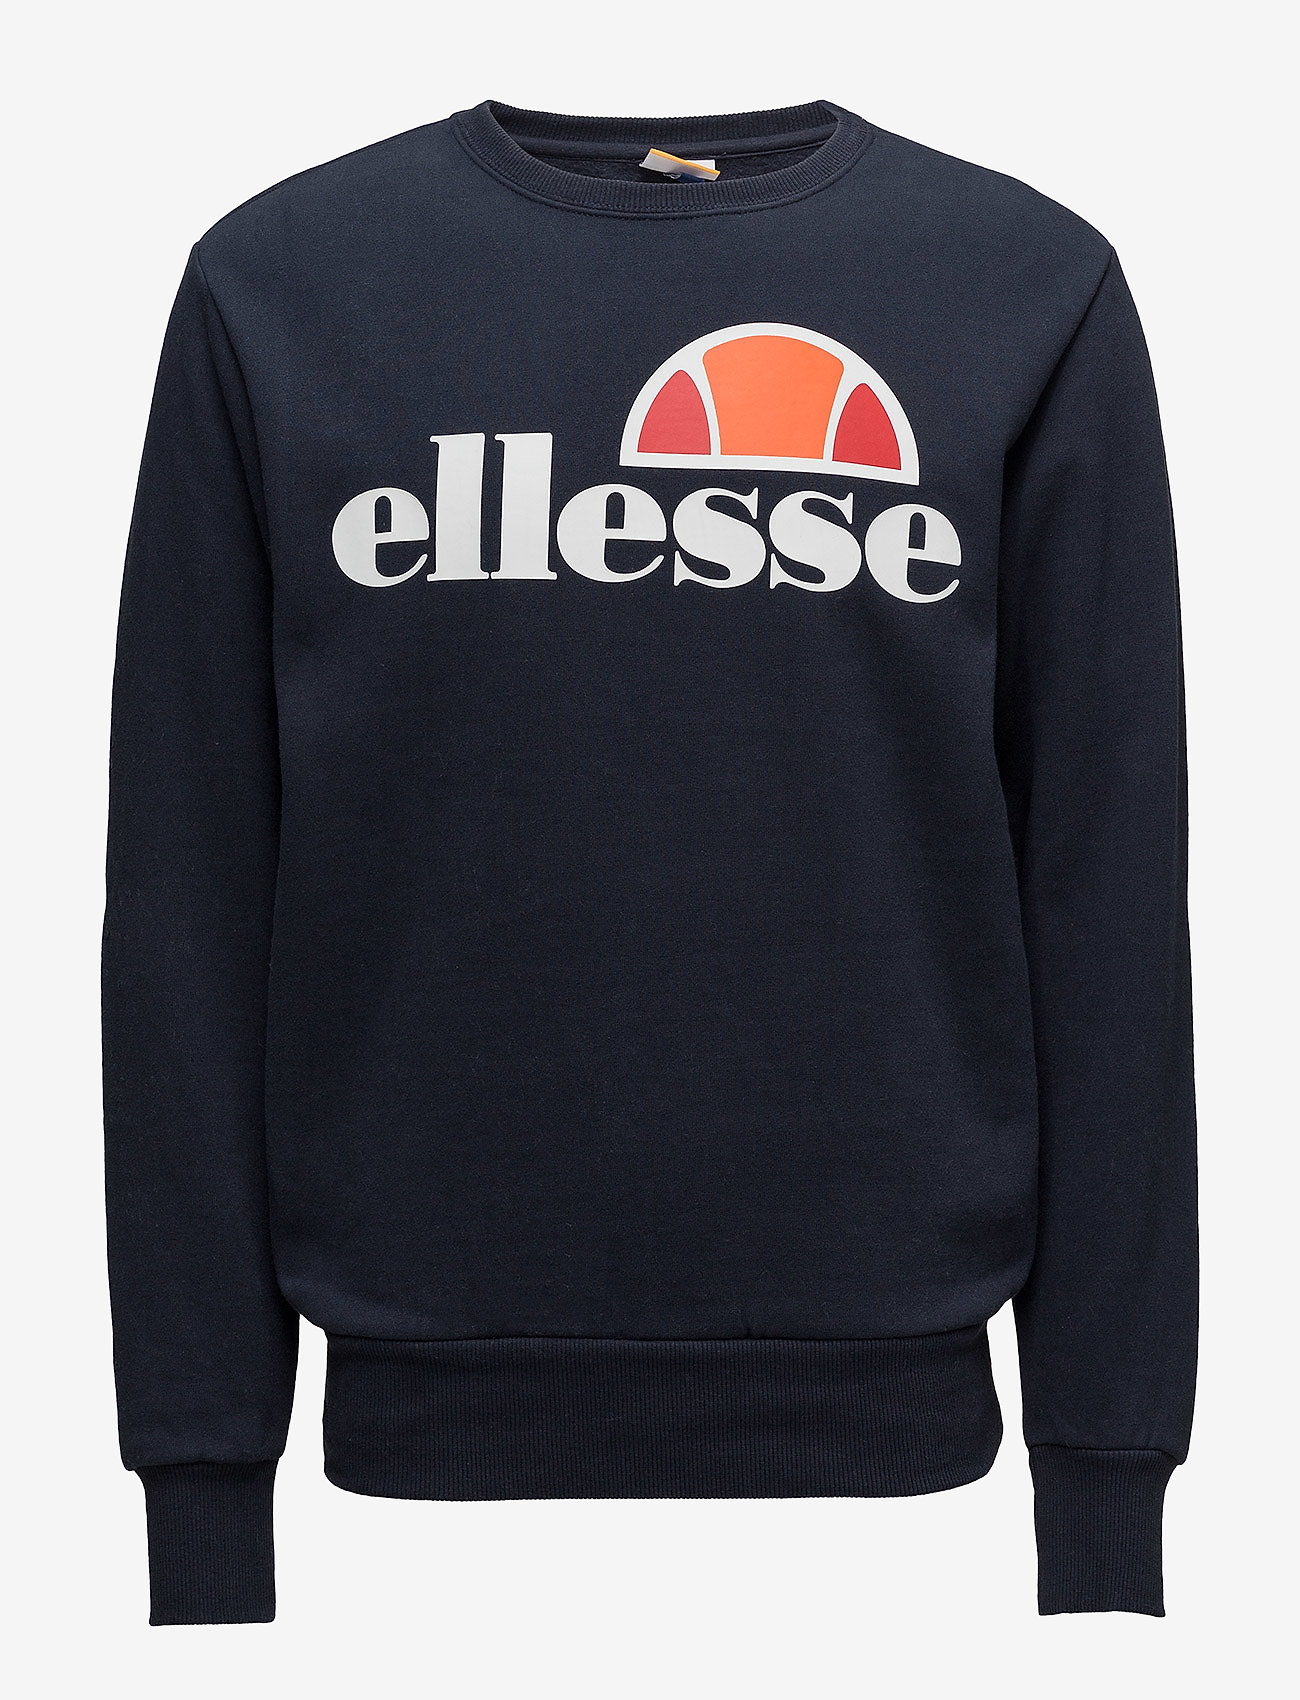 Ellesse - EL SUCCISO - svetarit - dress blues